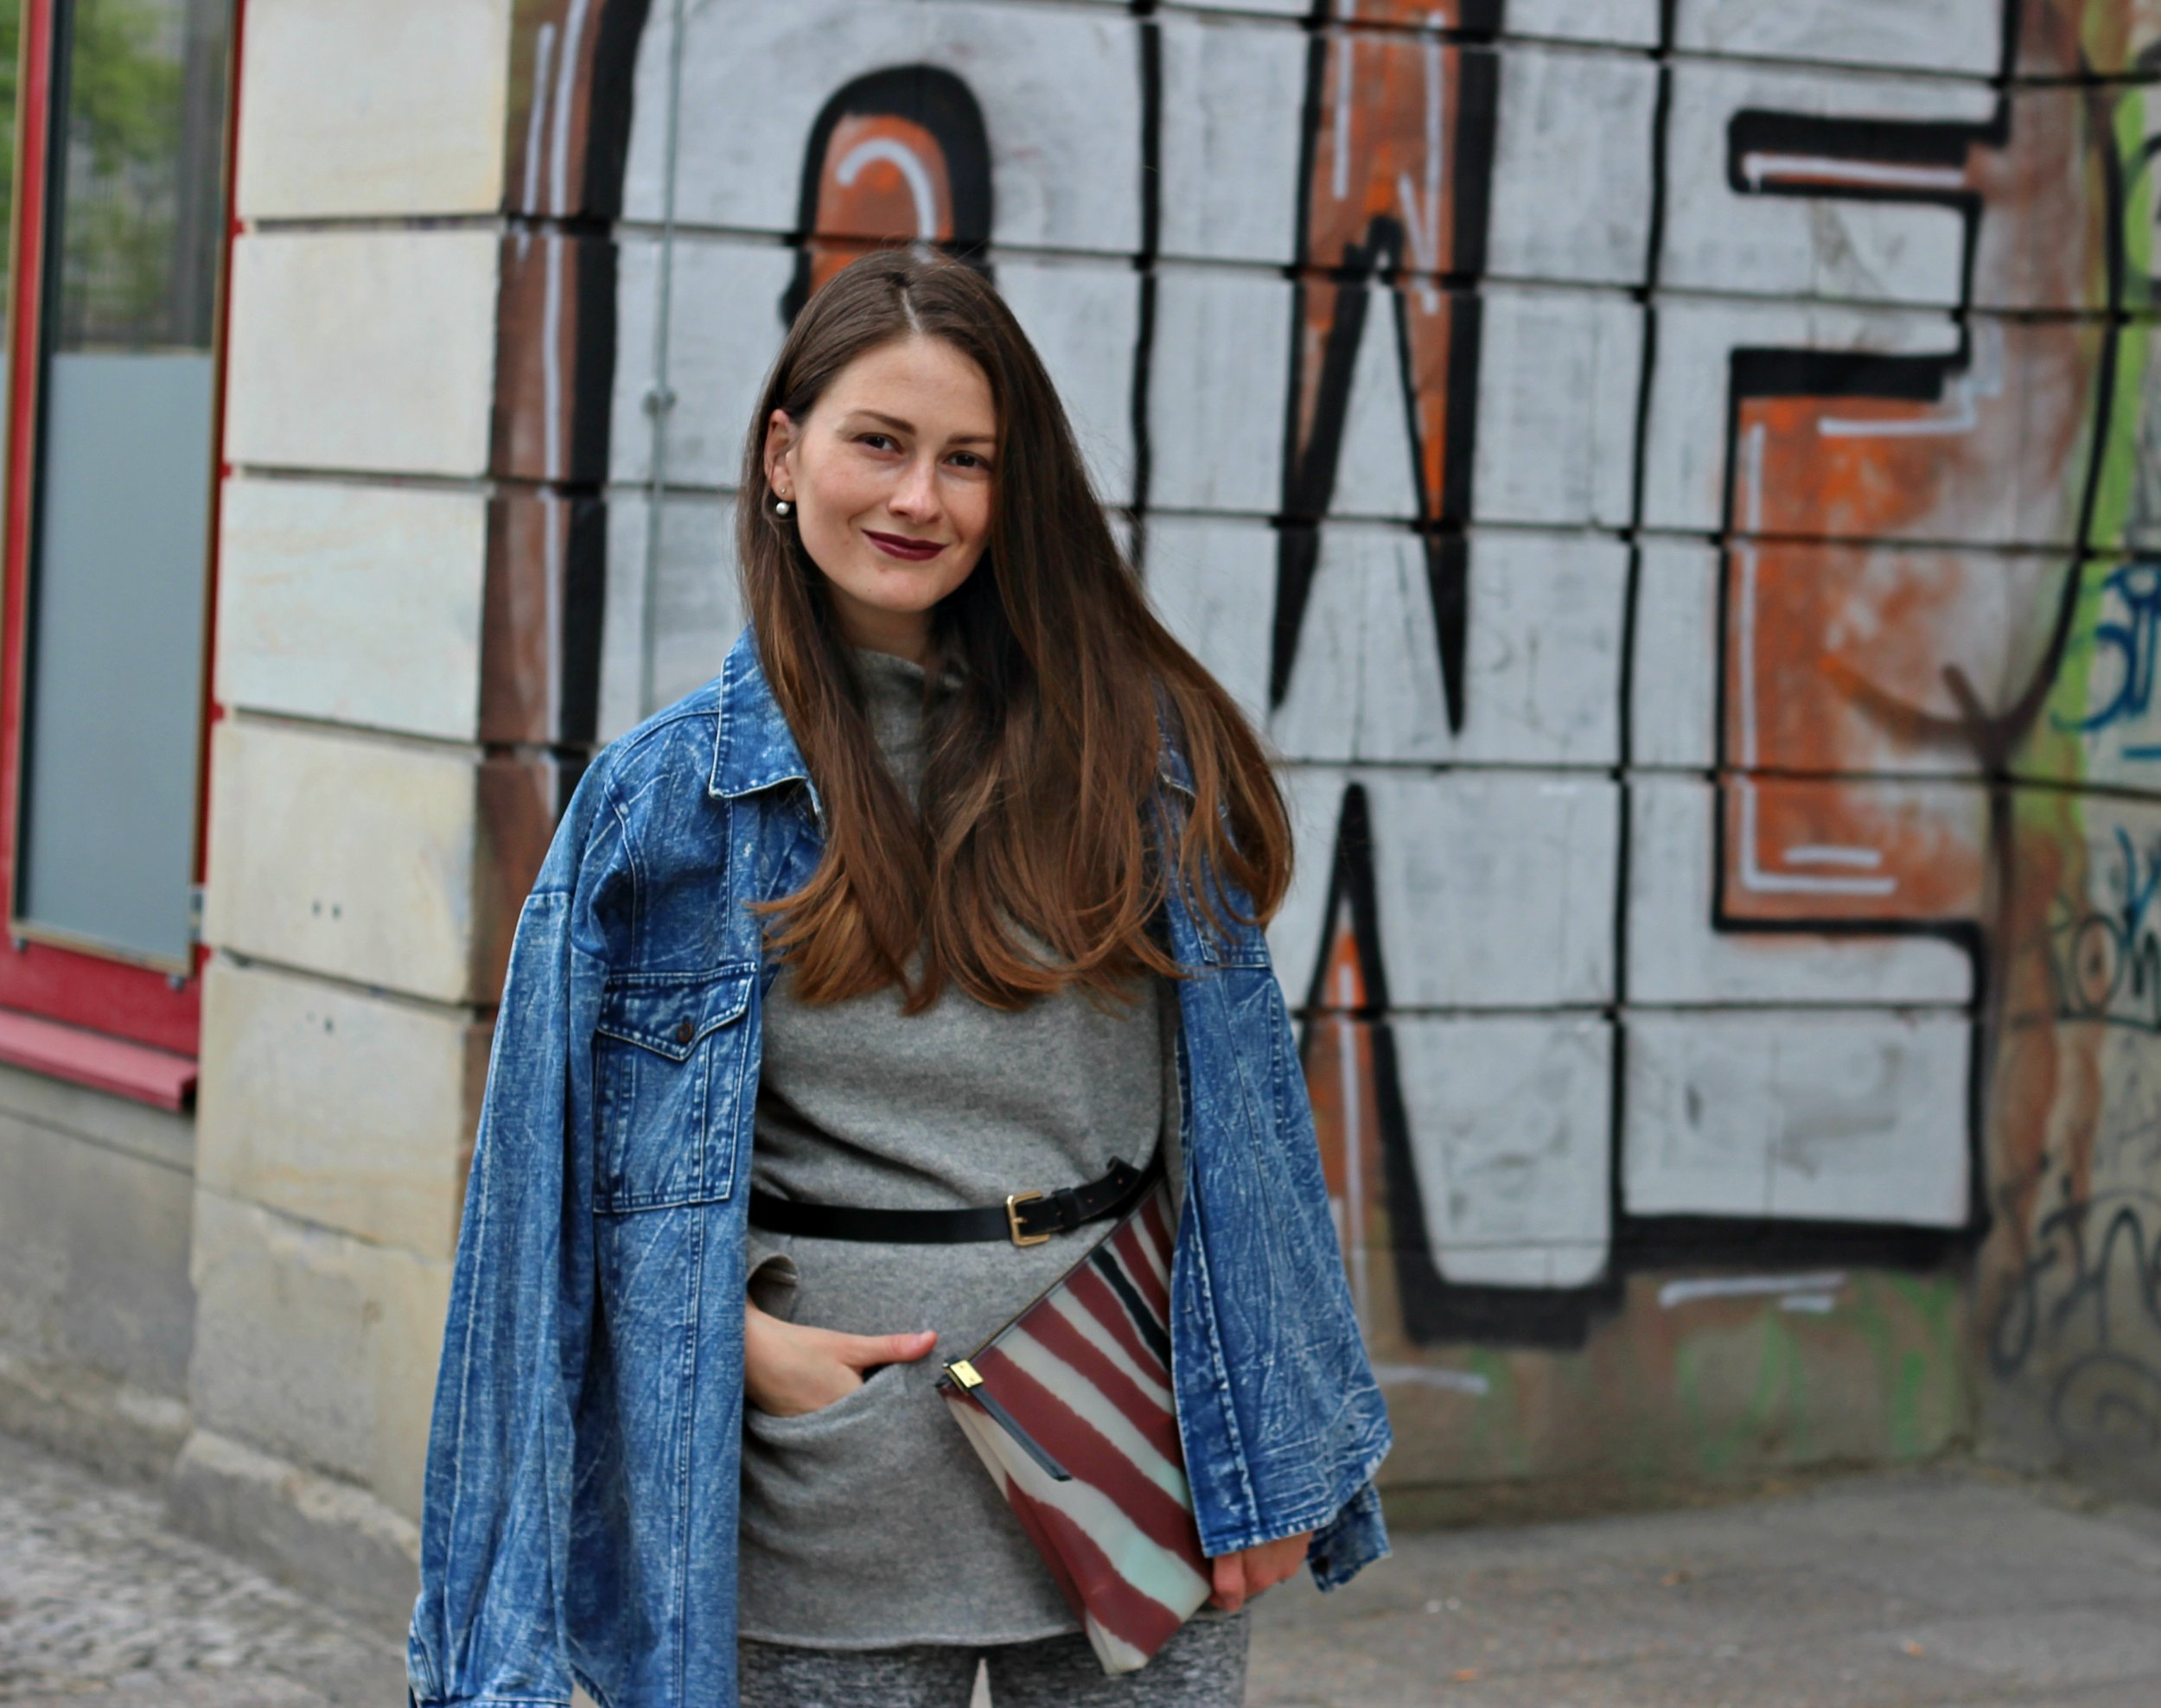 annaporter-denim-jacket-culottes-chelsea-boots-90's-outfit-style-fashion-blogger-6